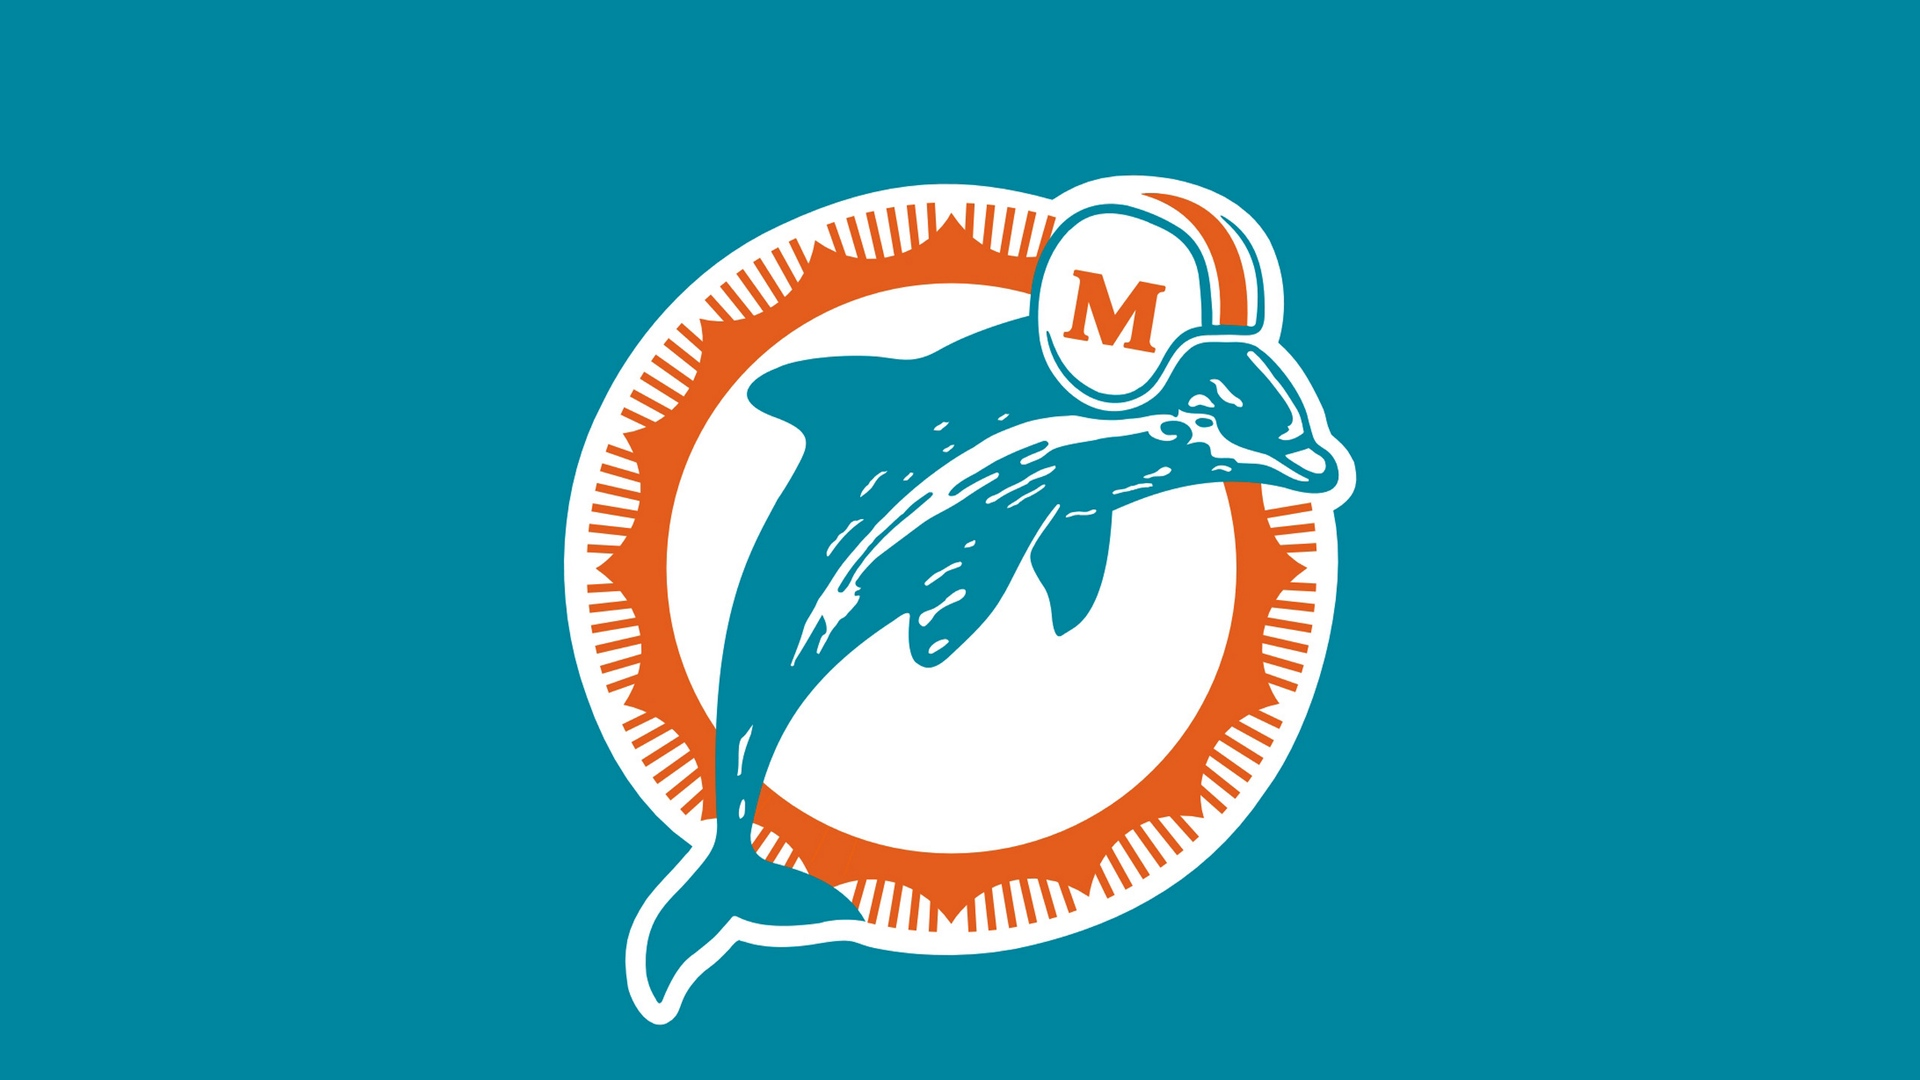 Miami Dolphins background wallpaper